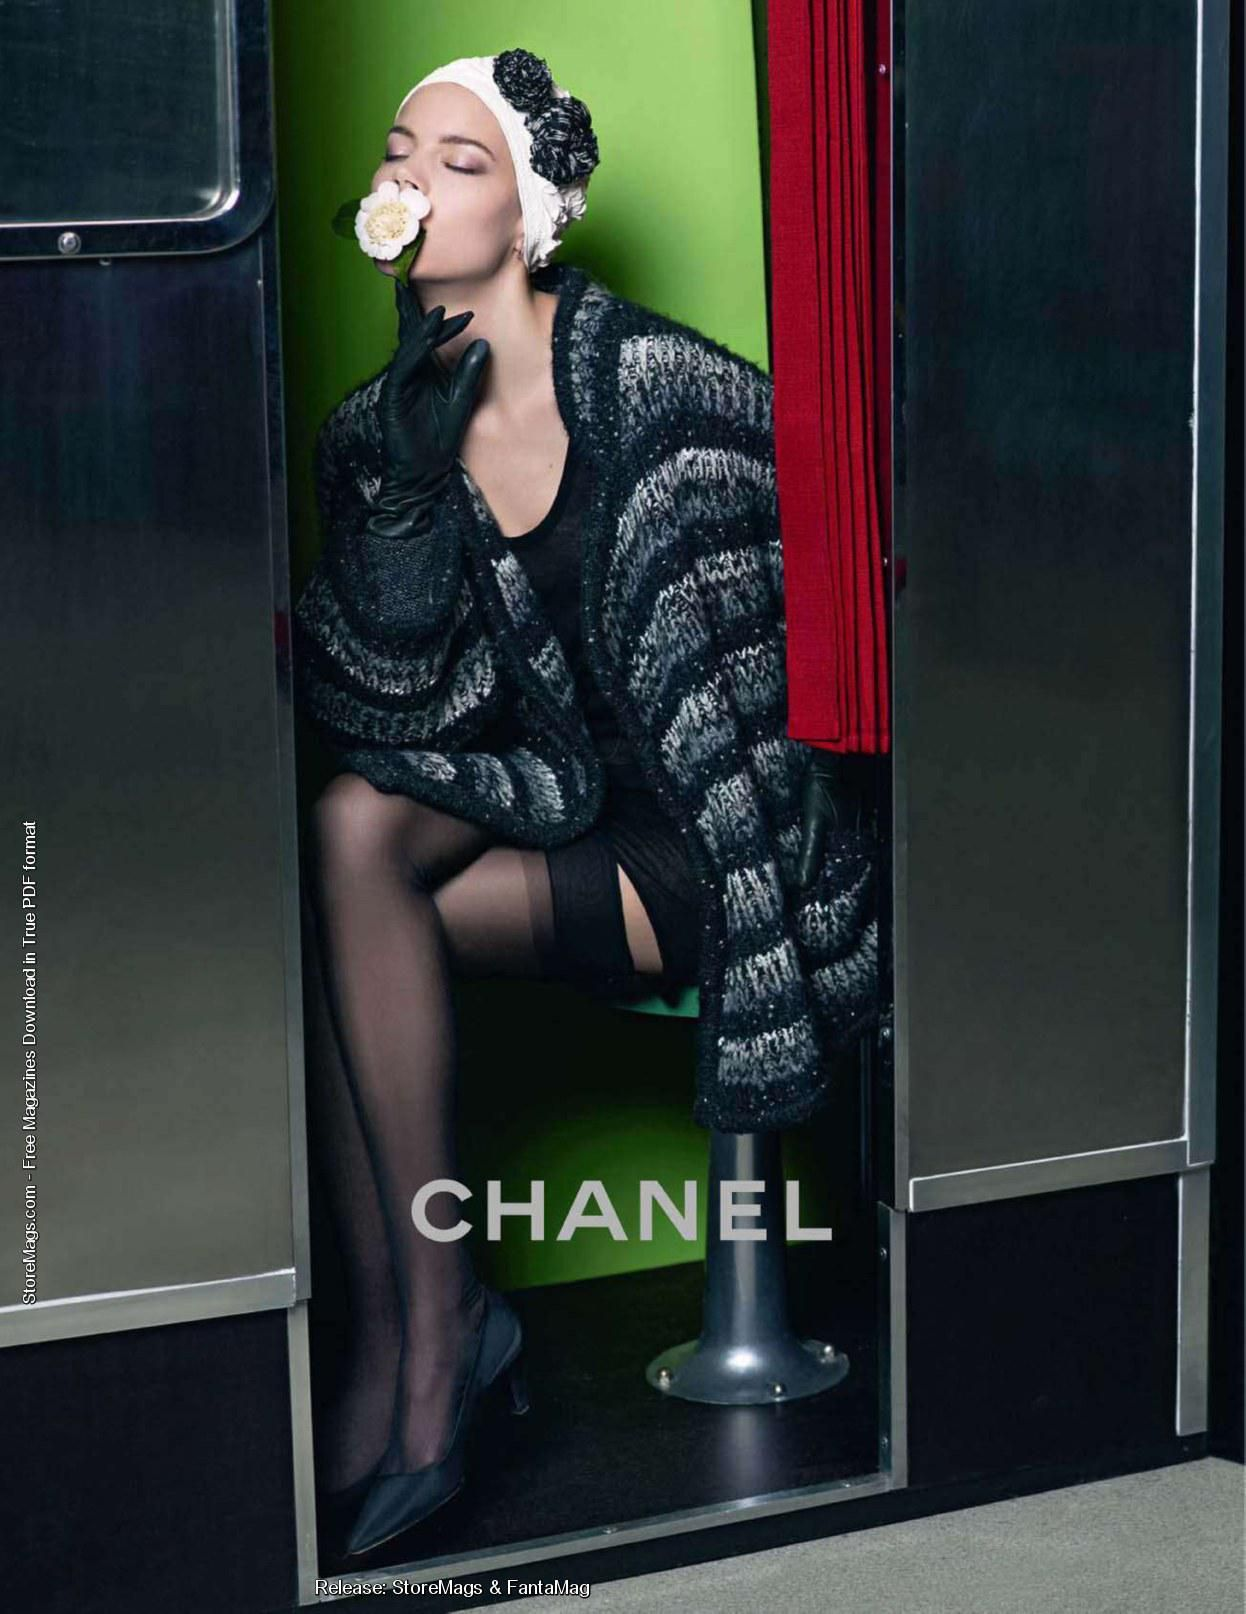 Chanel Cruise 2011 Ad Campaign recommendations